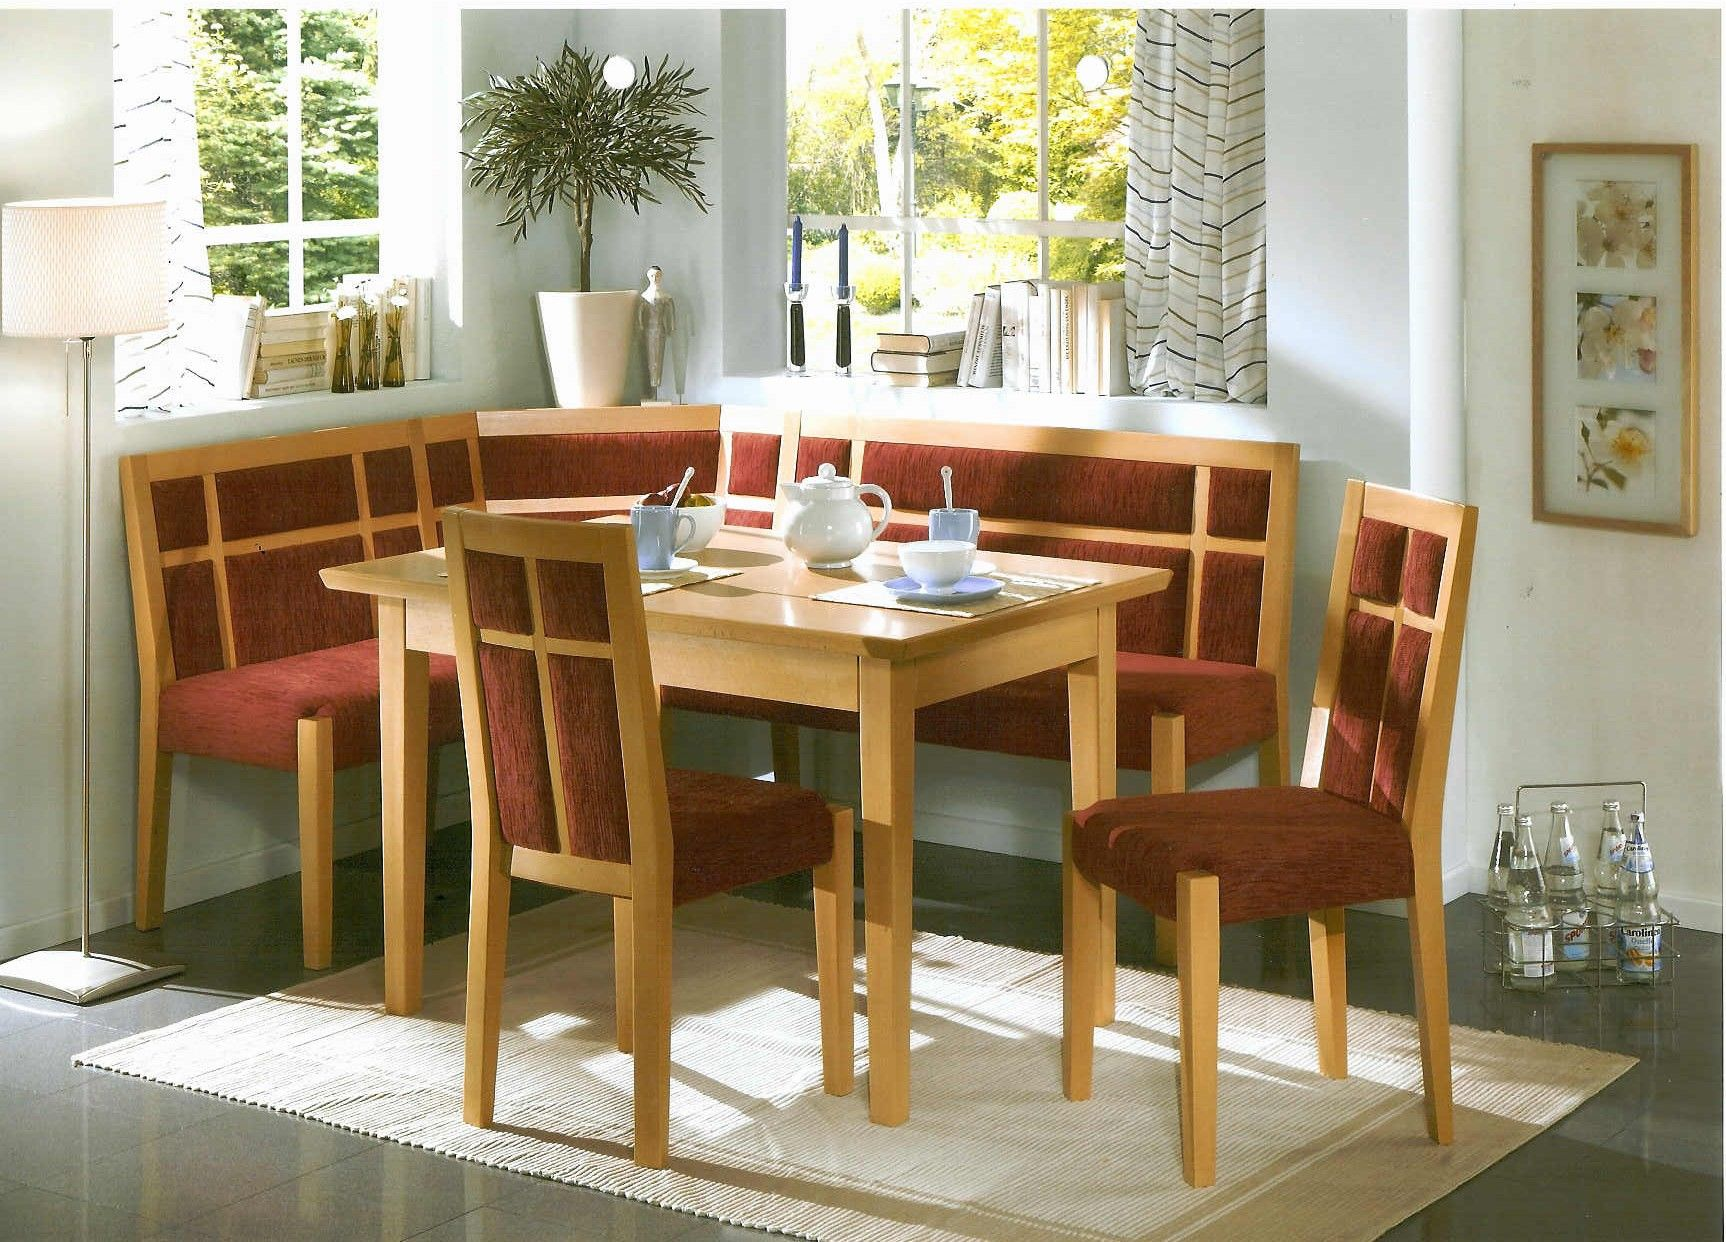 nook style kitchen table design for a small space solid wood farmhouse stl corner bench booth